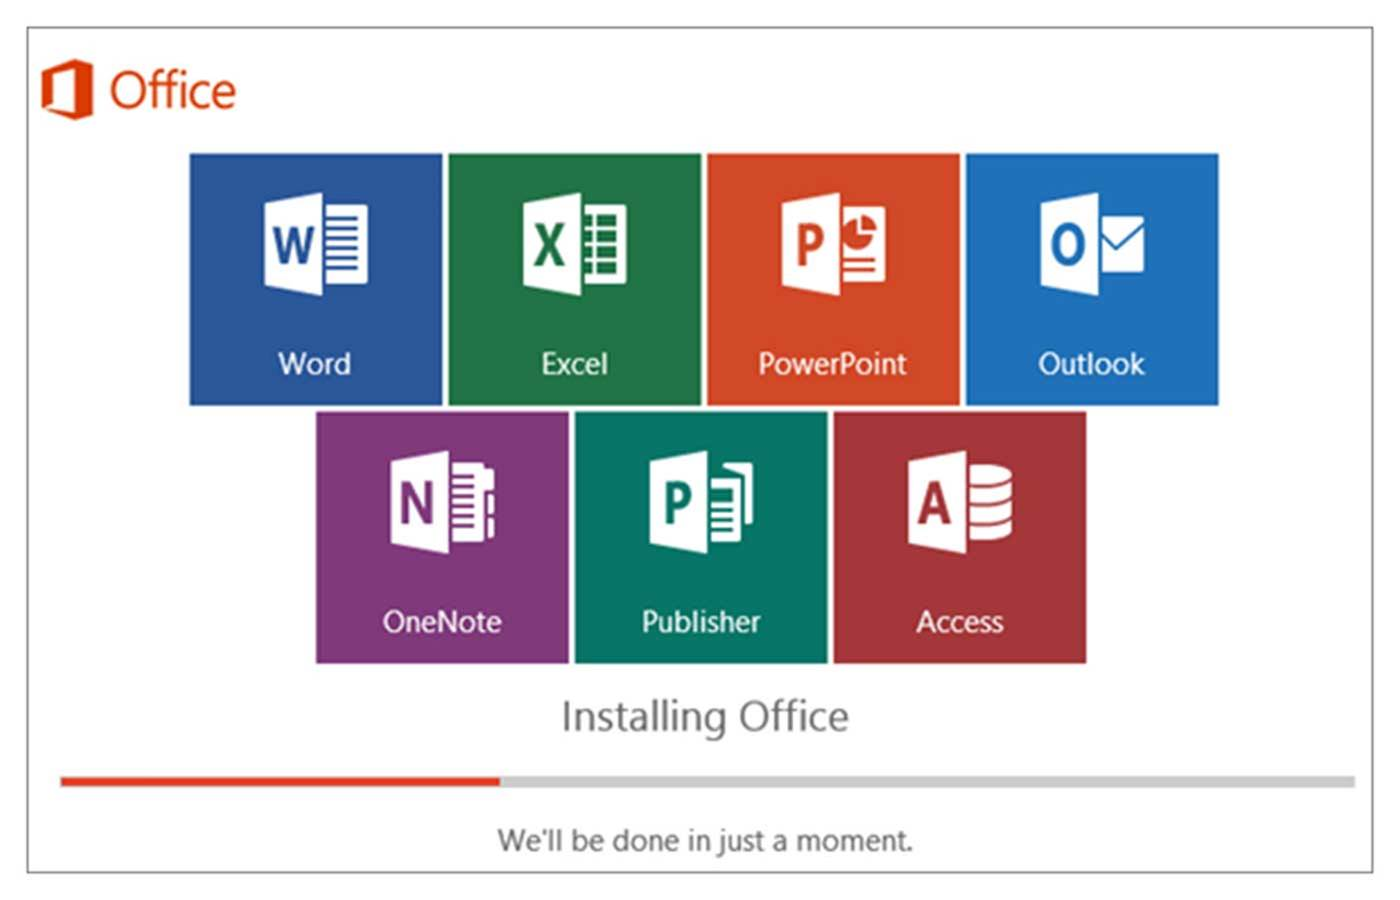 Microsoft Office rolls out on Google's Chromebooks